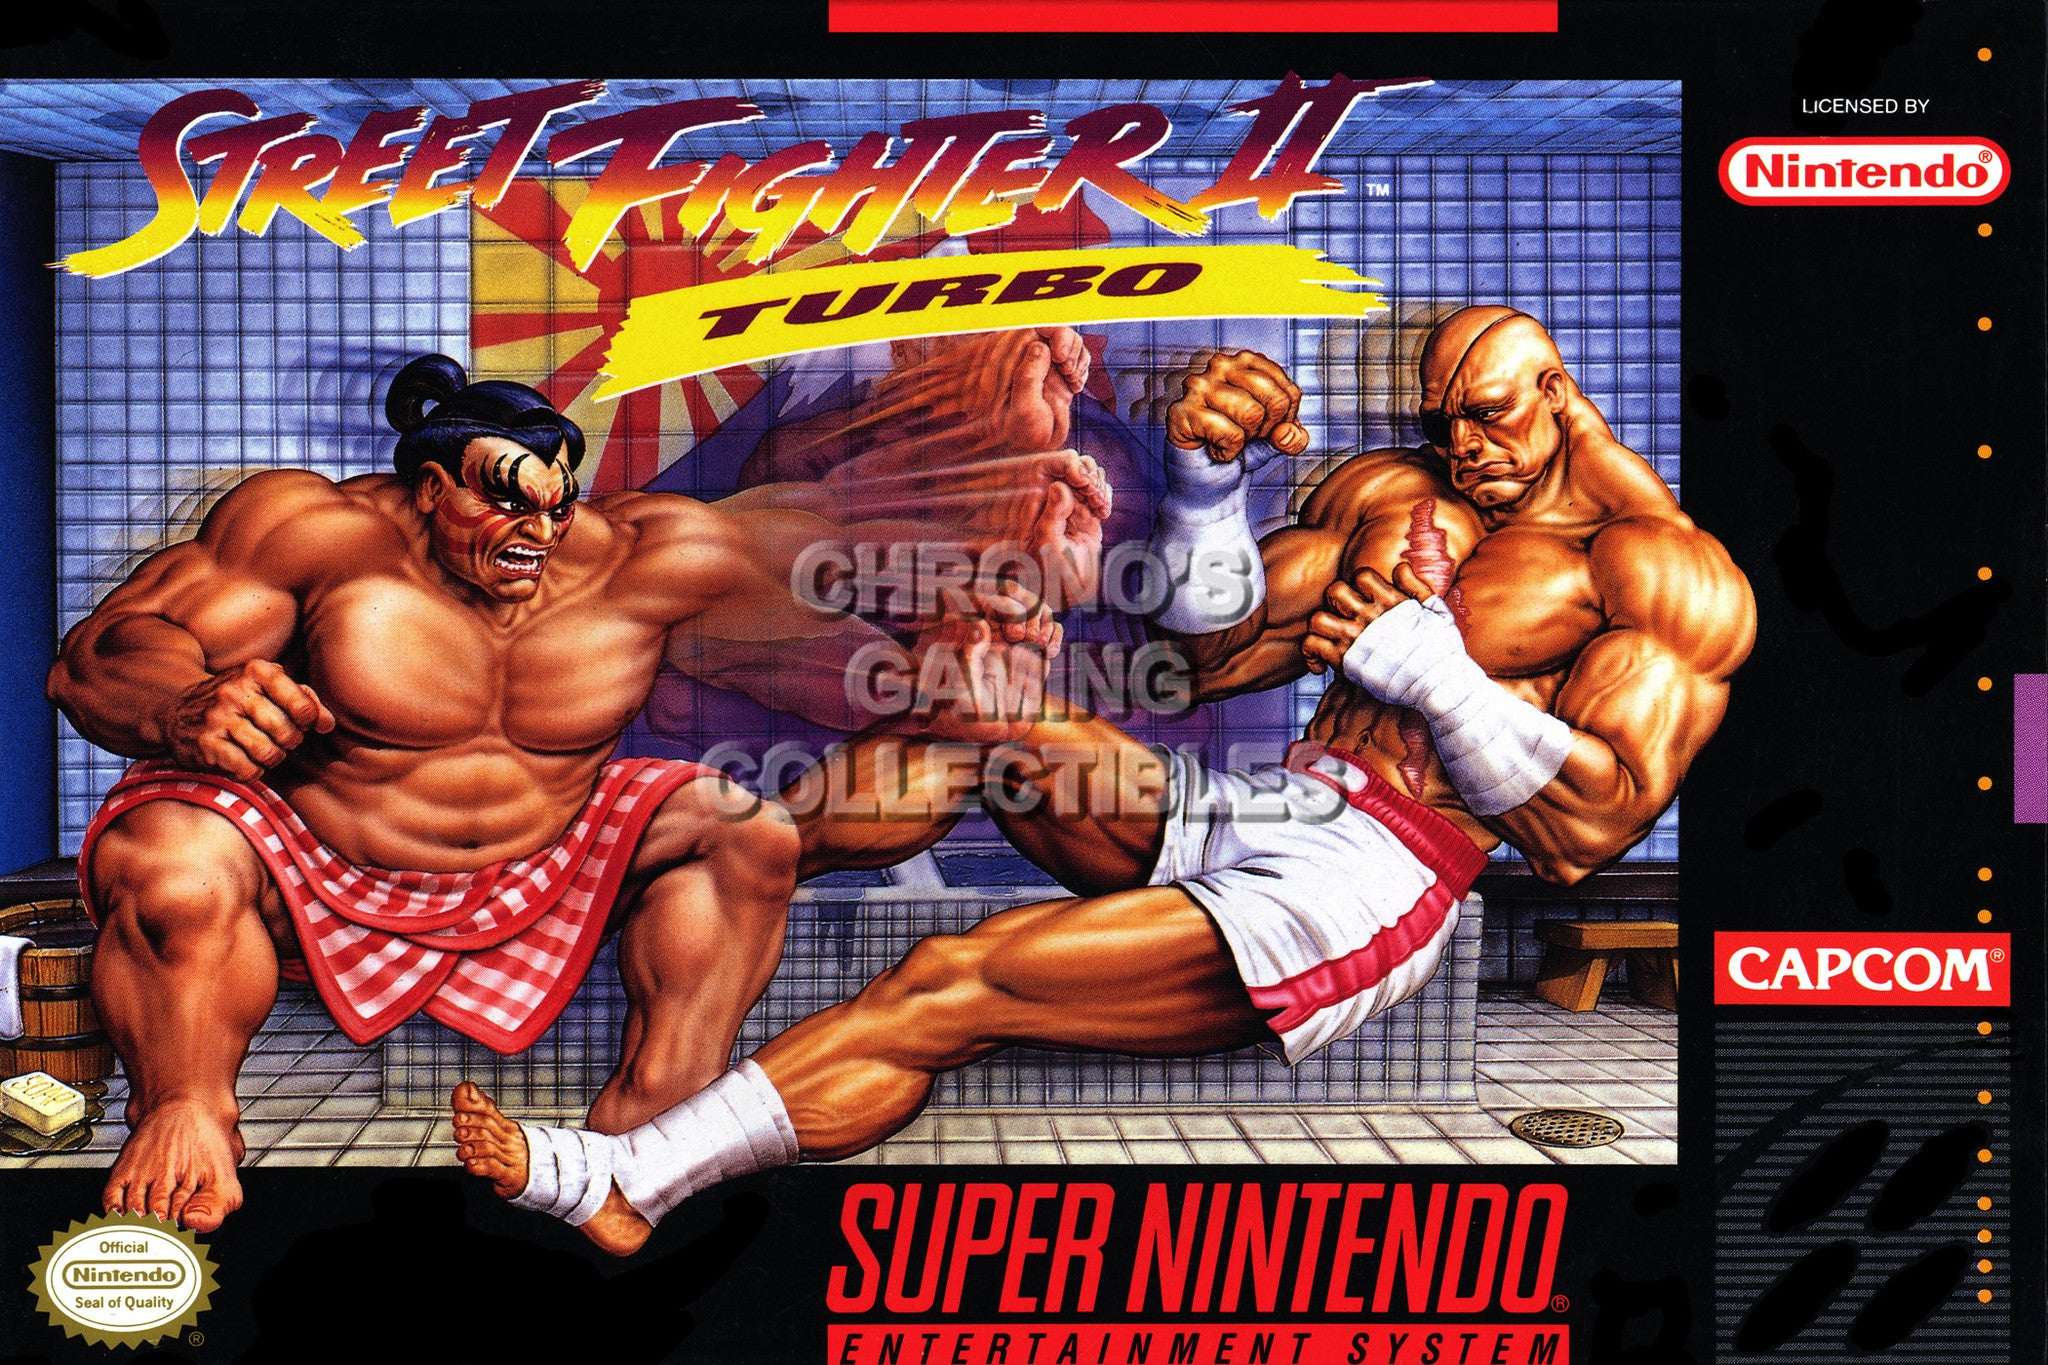 Classic Snes Video Games Poster Cgcposters